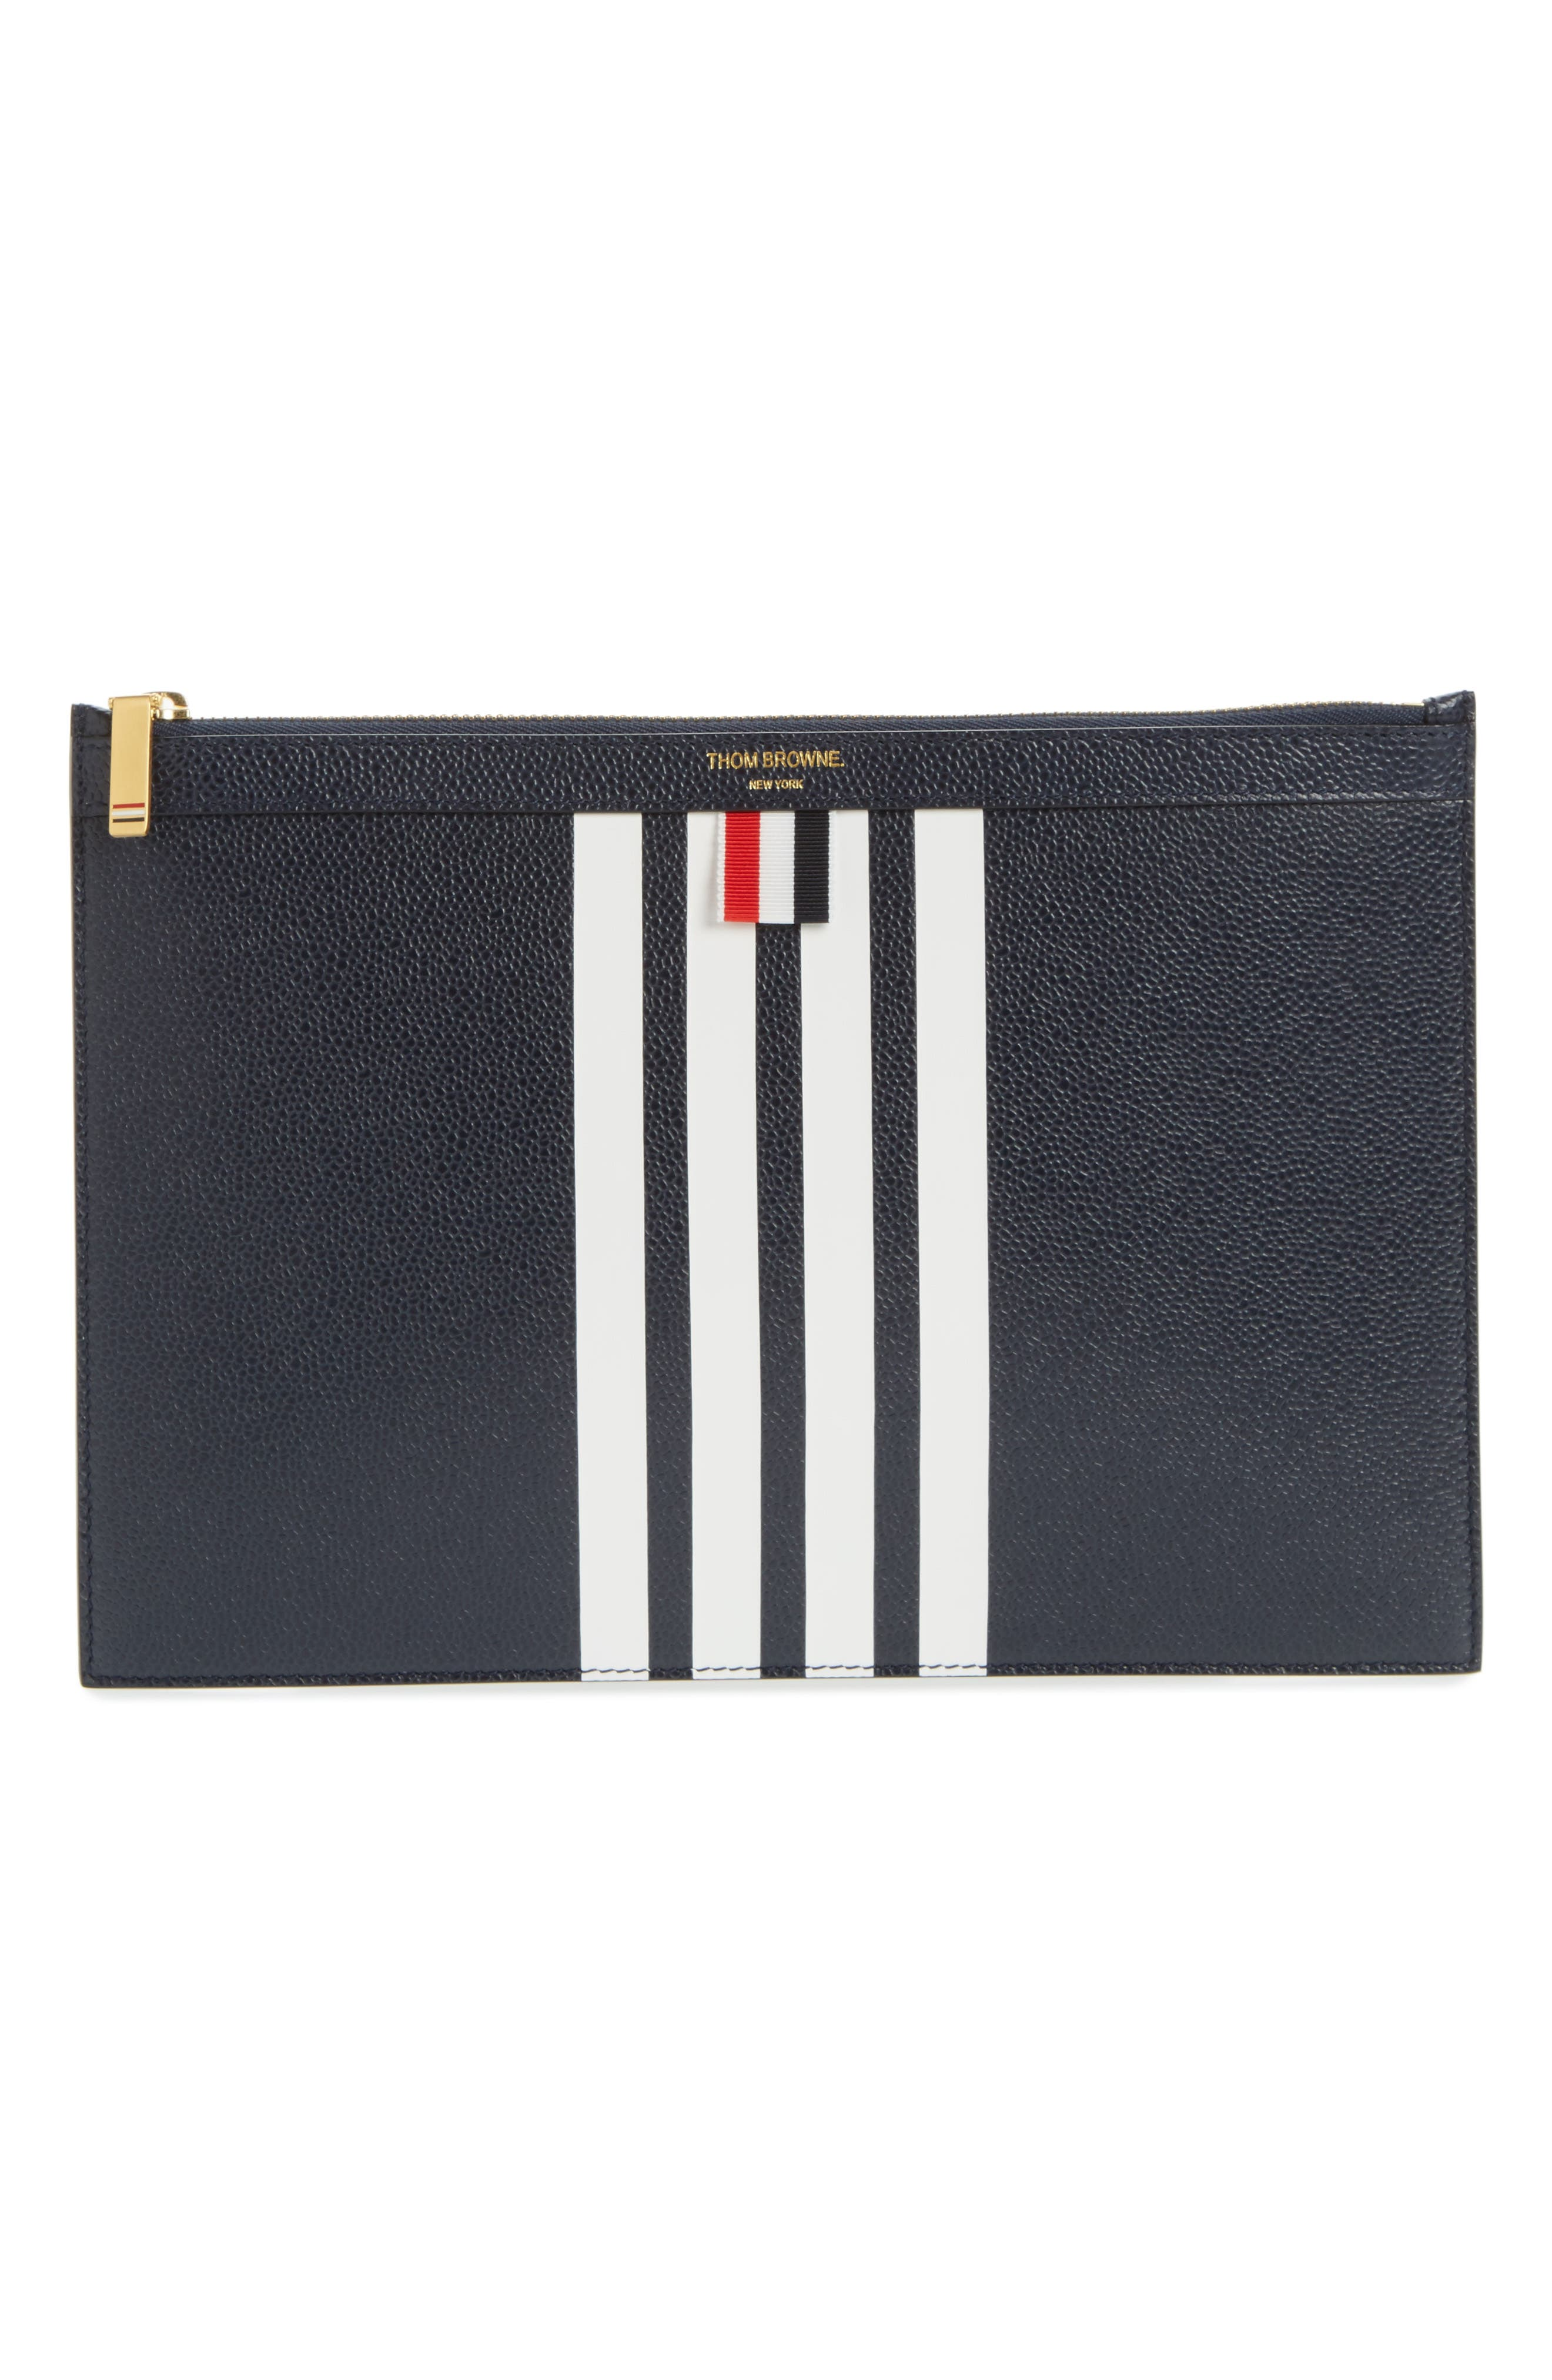 Thom Browne Stripe Leather Folio